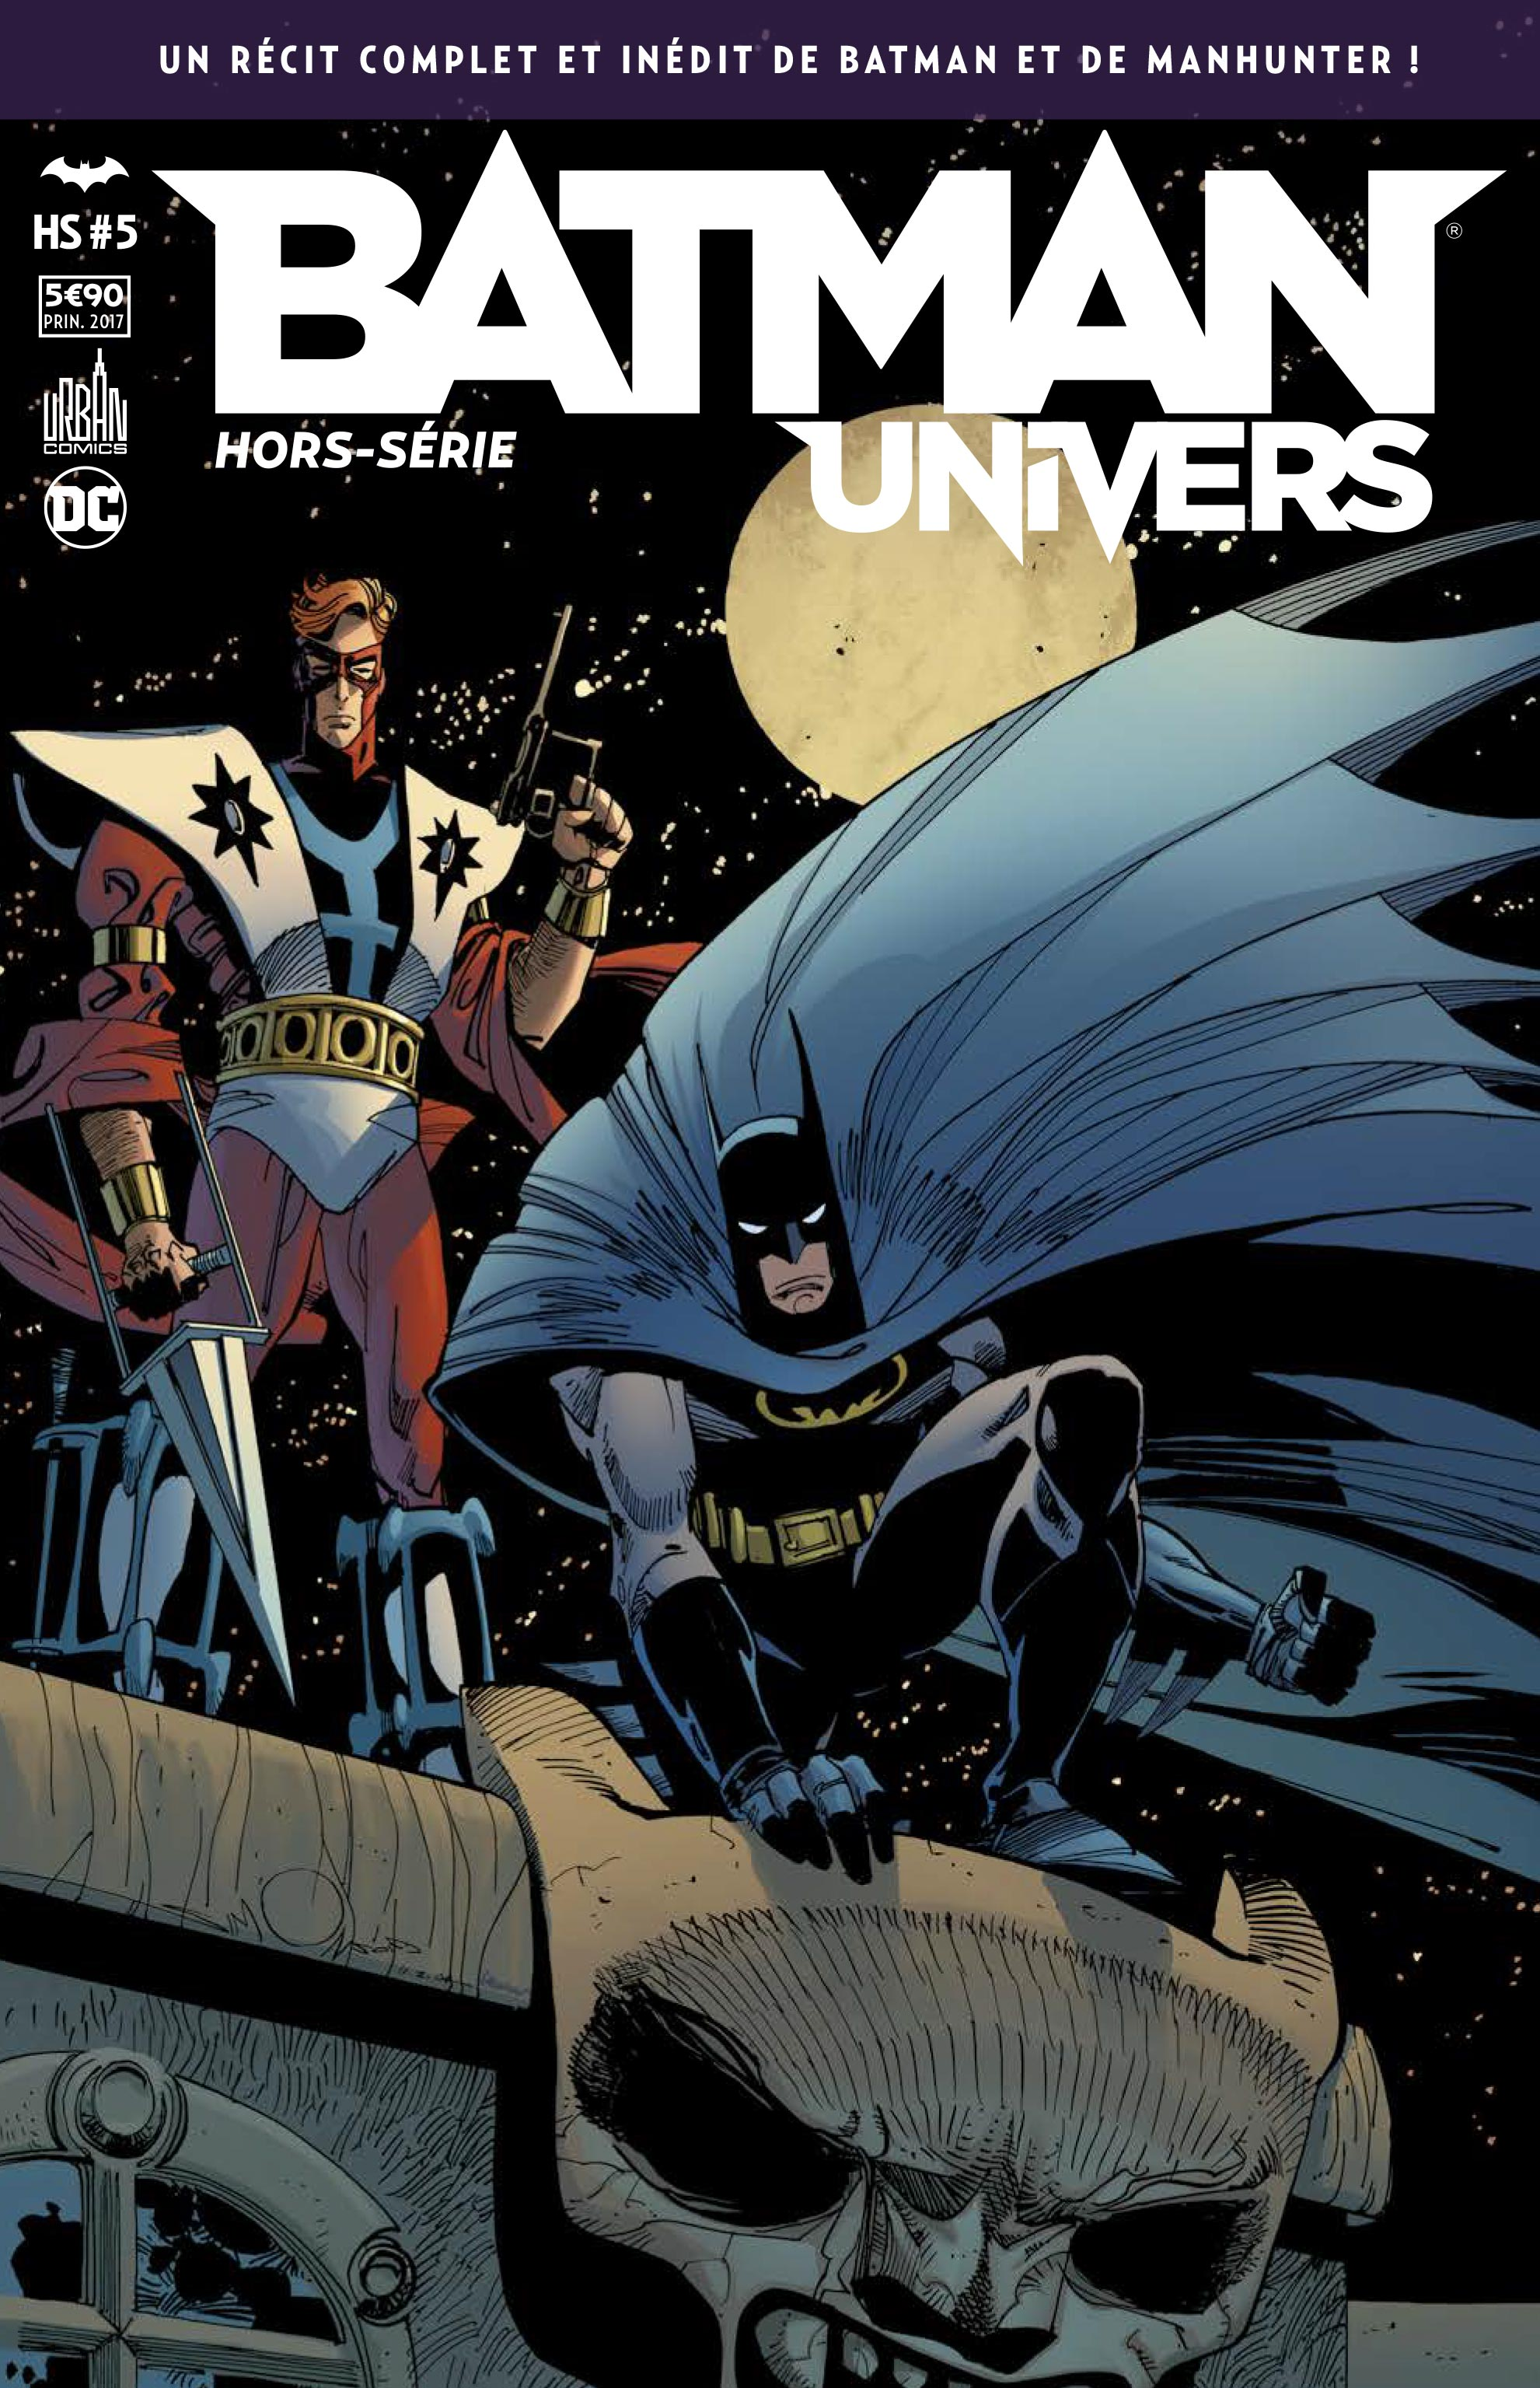 Batman Univers Hors-Série 5 - Manhunter